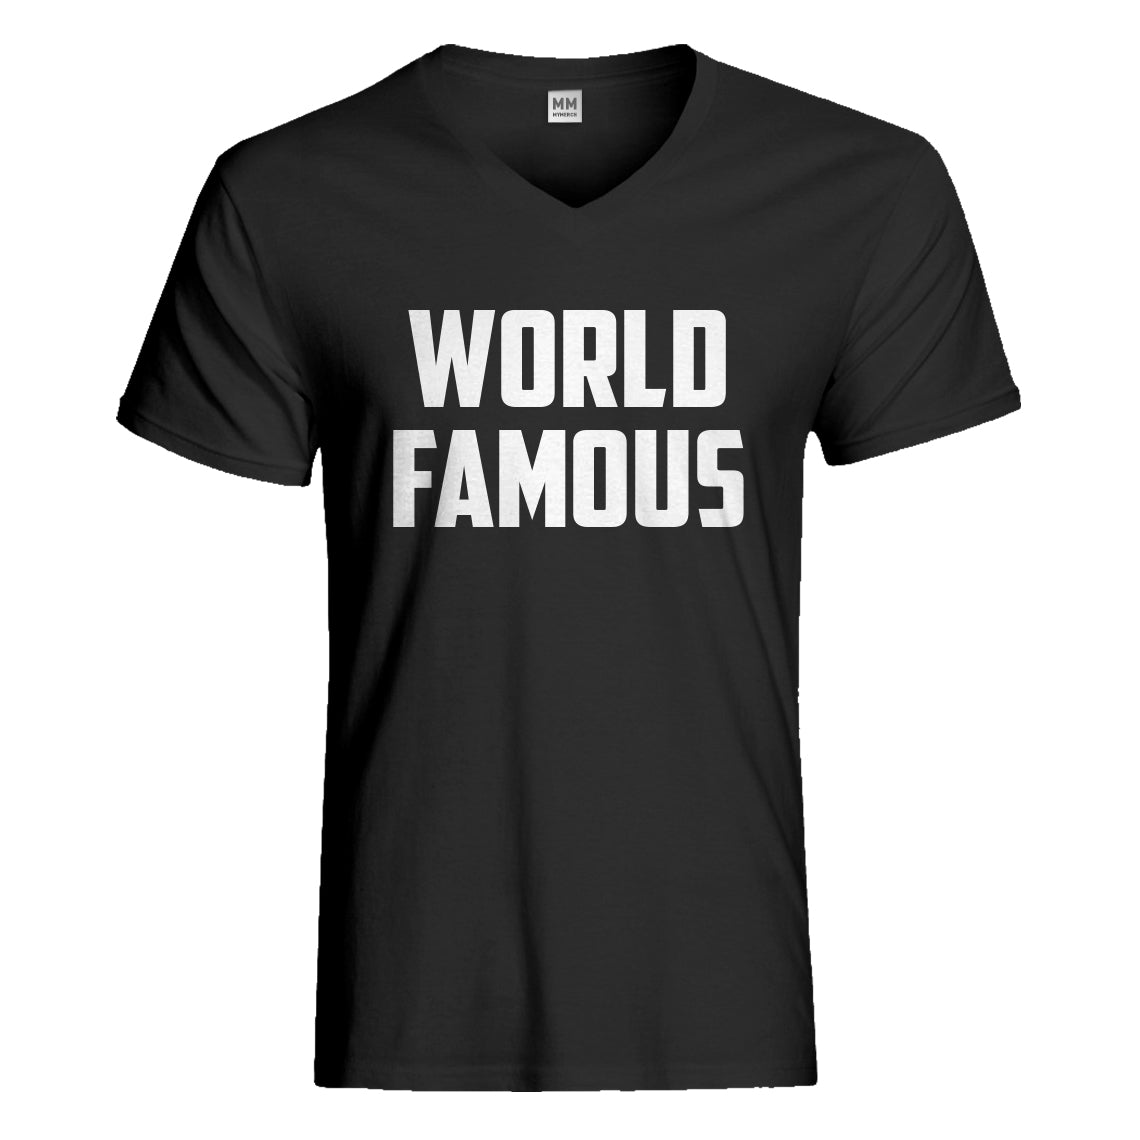 Mens World Famous Vneck T-shirt